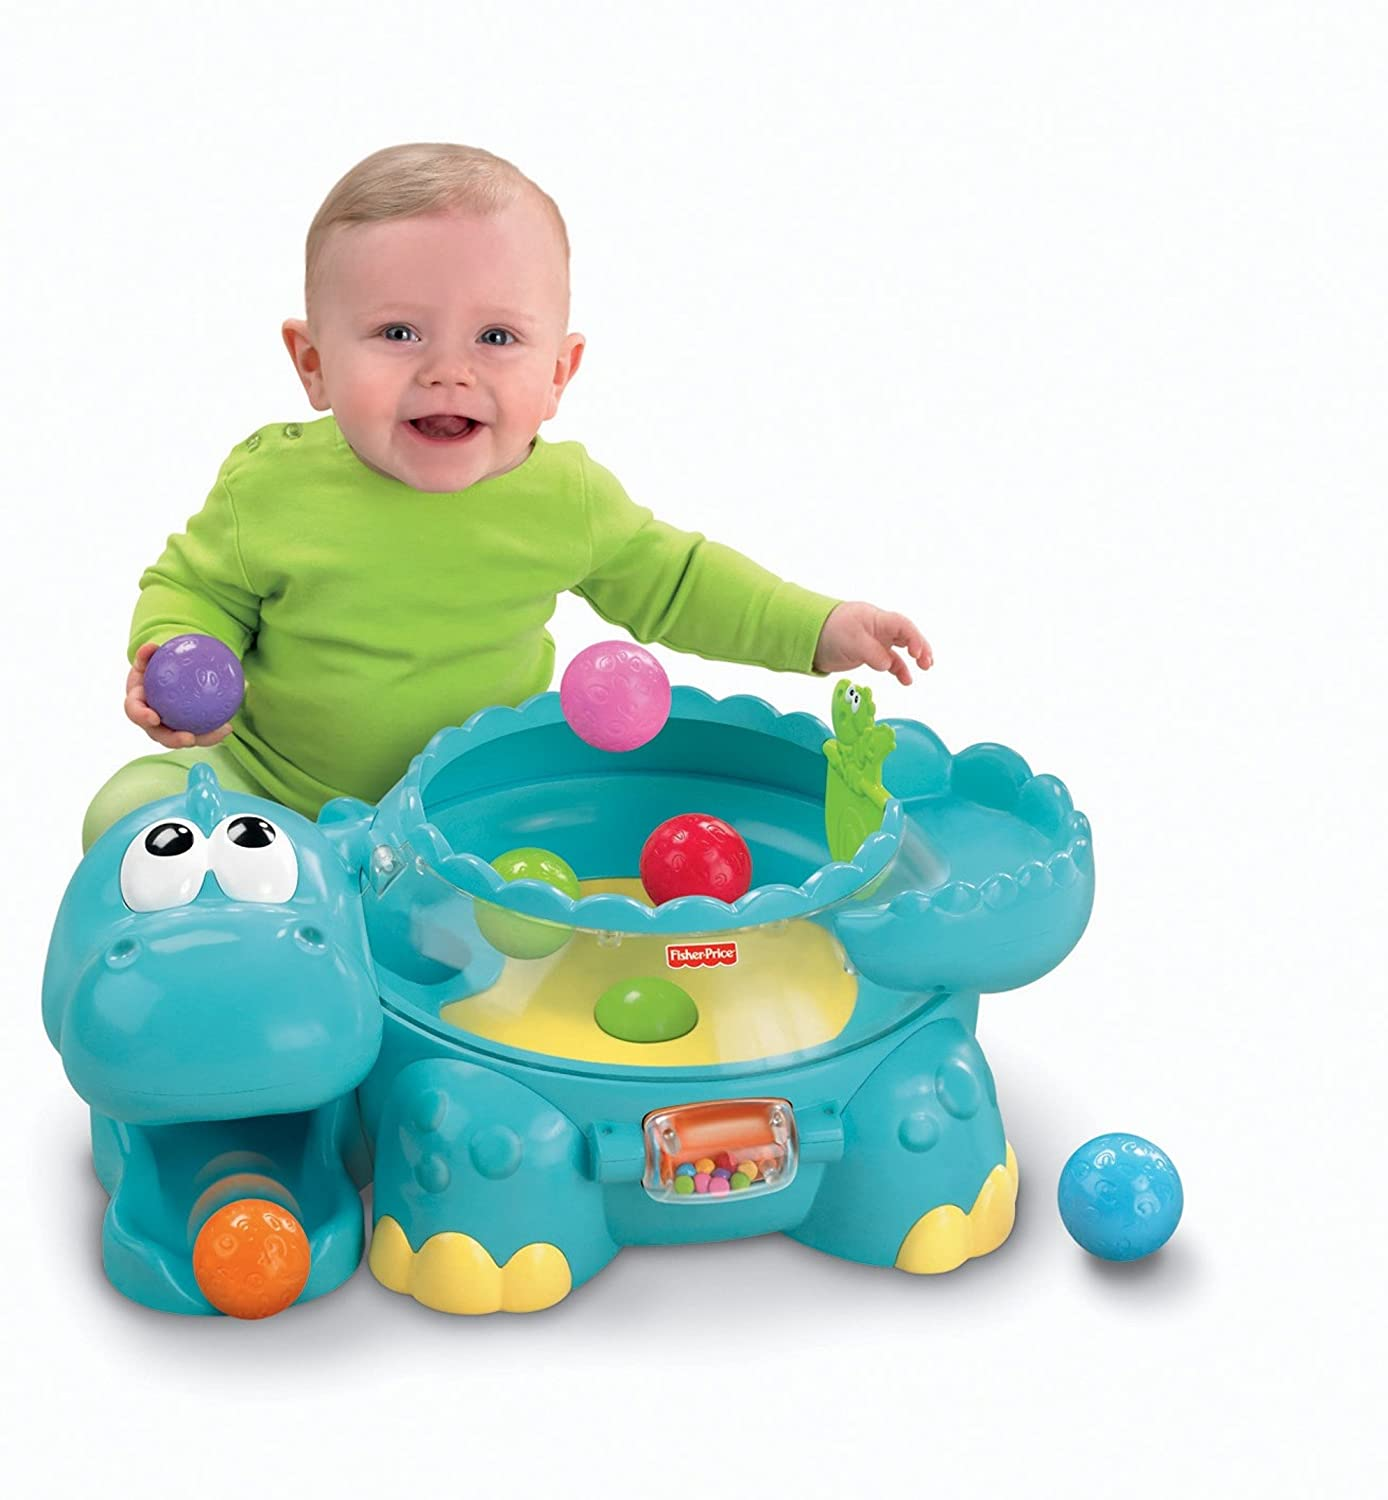 Mattel W1392 Fisher Price Musikale Dino Amazon Spielzeug